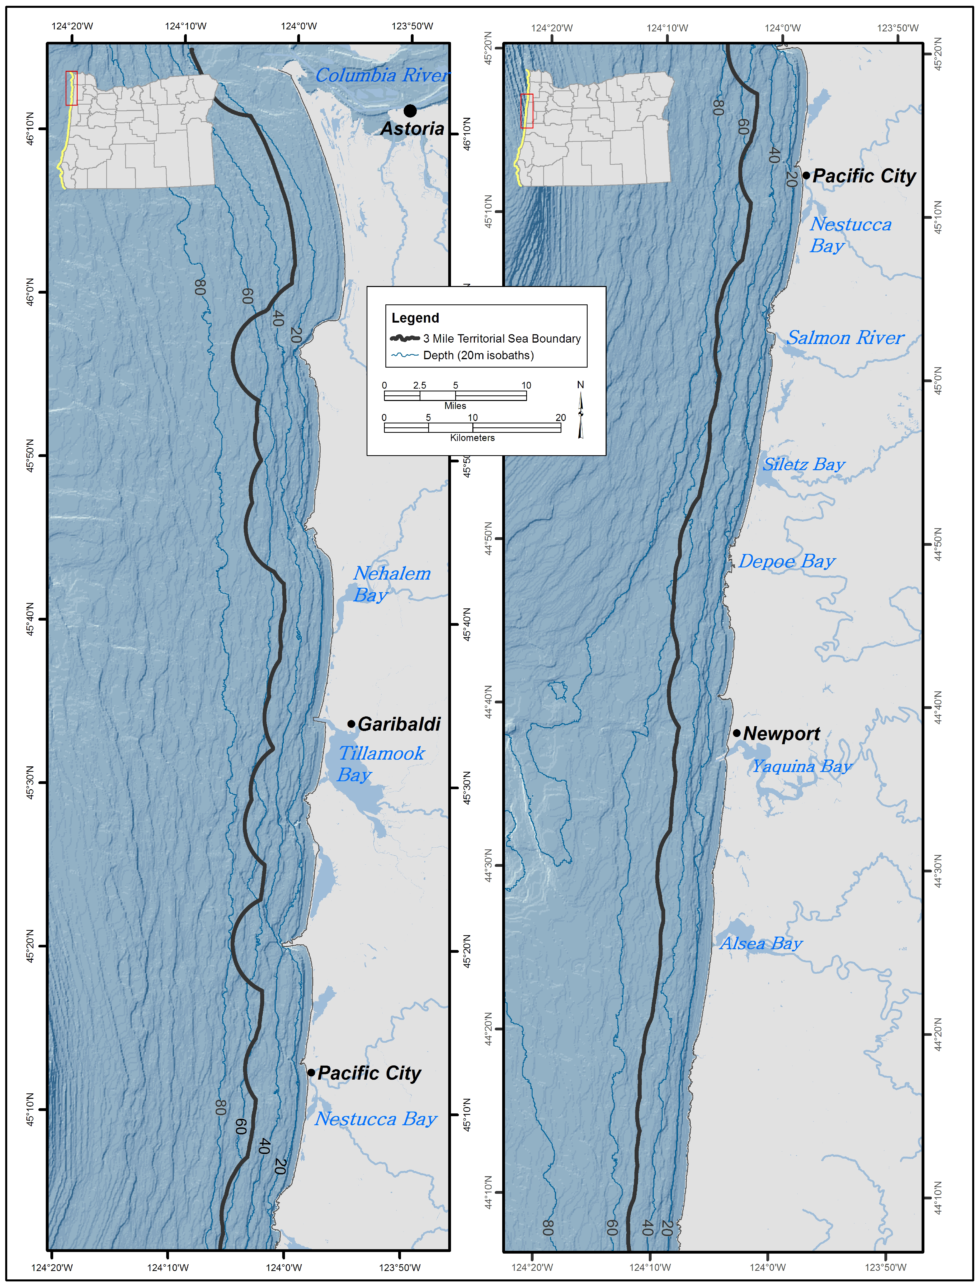 Map of Nearshore area along north Oregon coast.